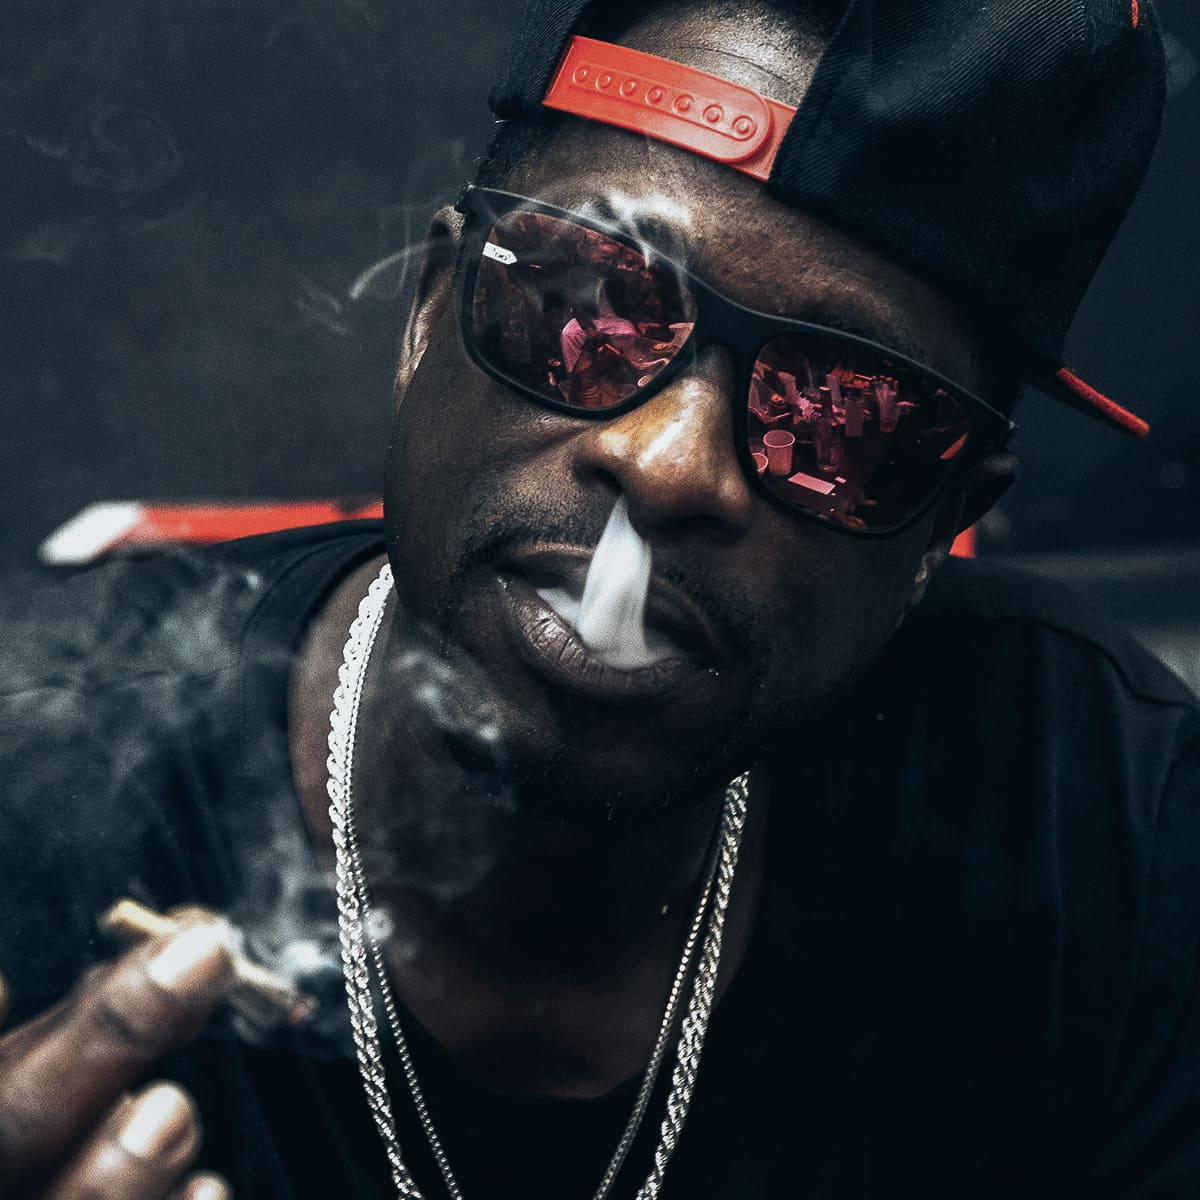 glofyfy unbreakbale Sonnenbrille Celebrities Devin The Dude